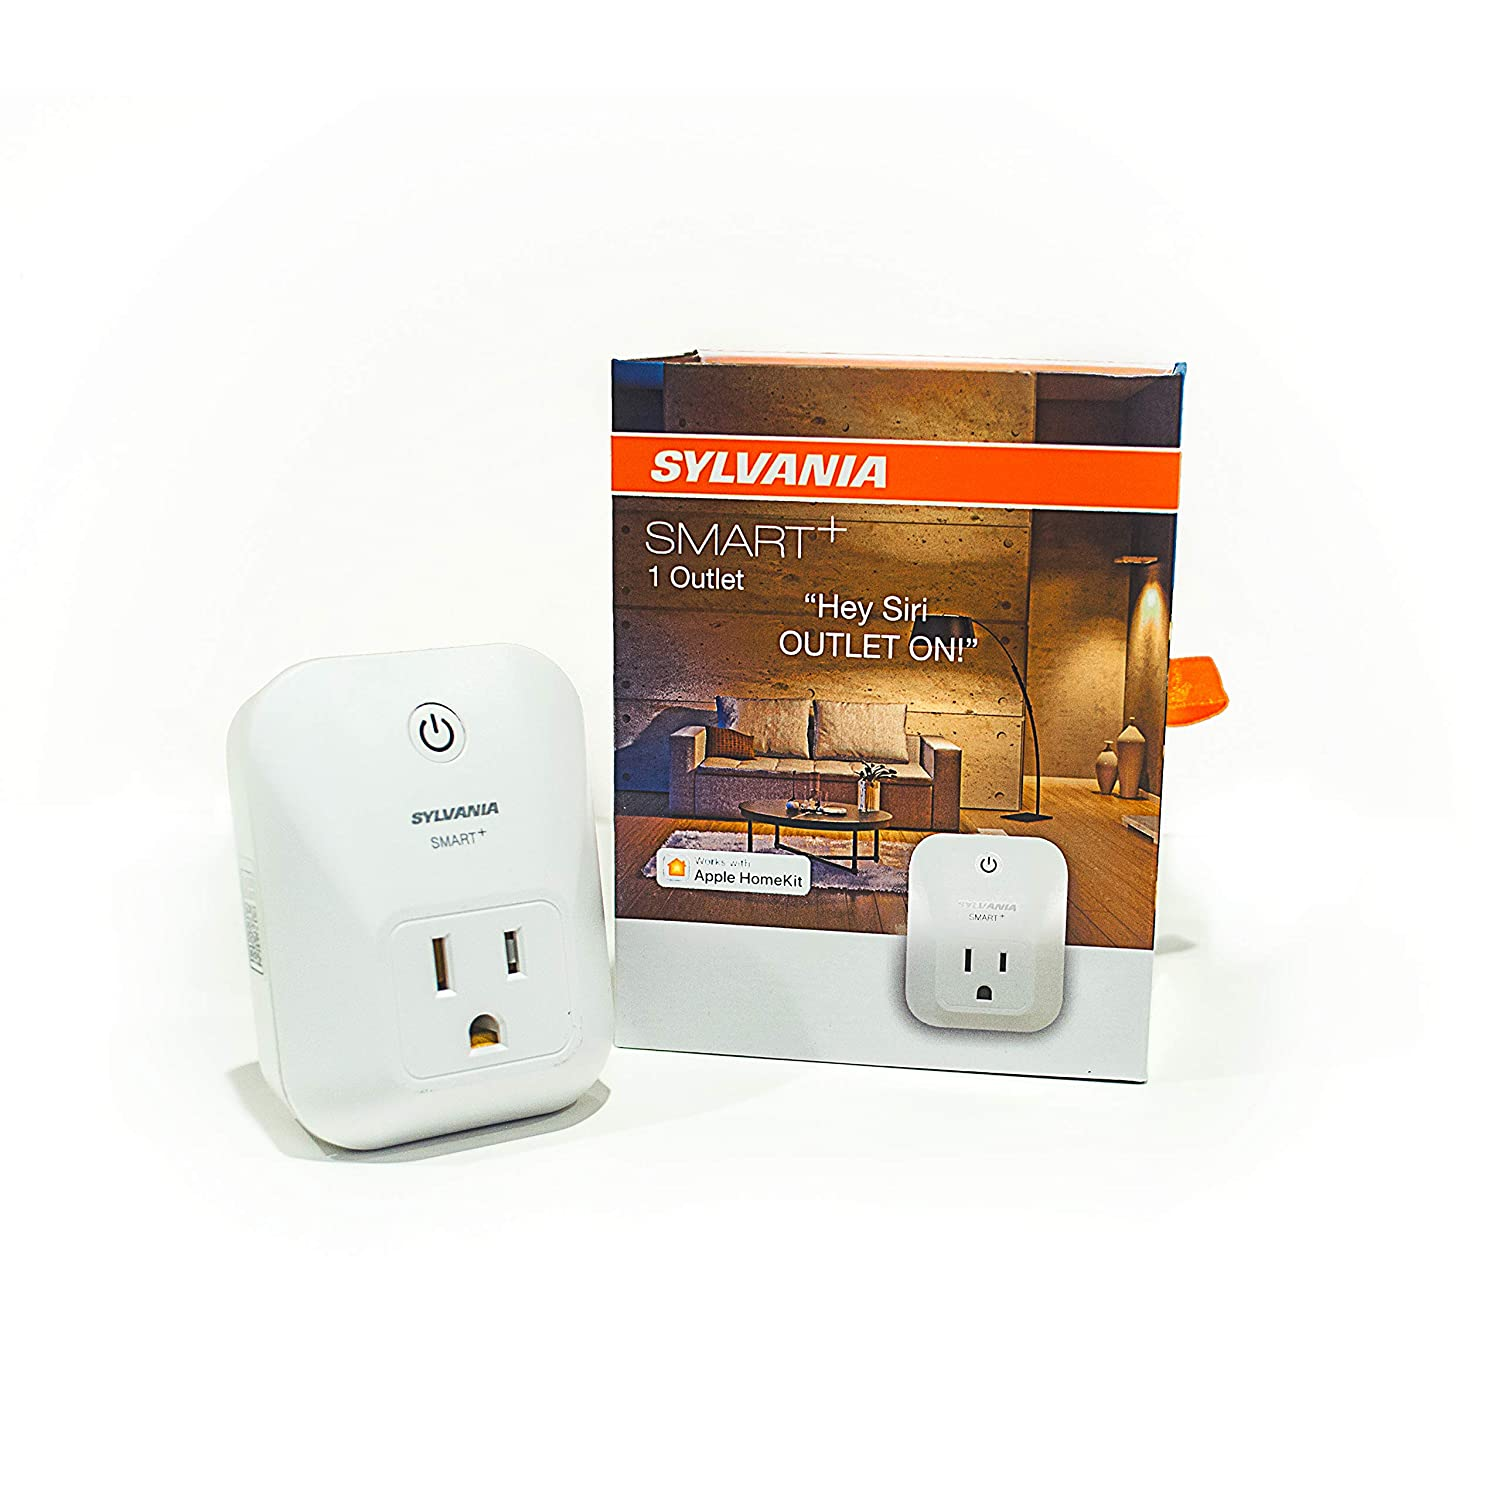 SYLVANIA SMART+ Apple HomeKit Smart Plug, Works with Siri Voice Control, No Hub Required for Set up